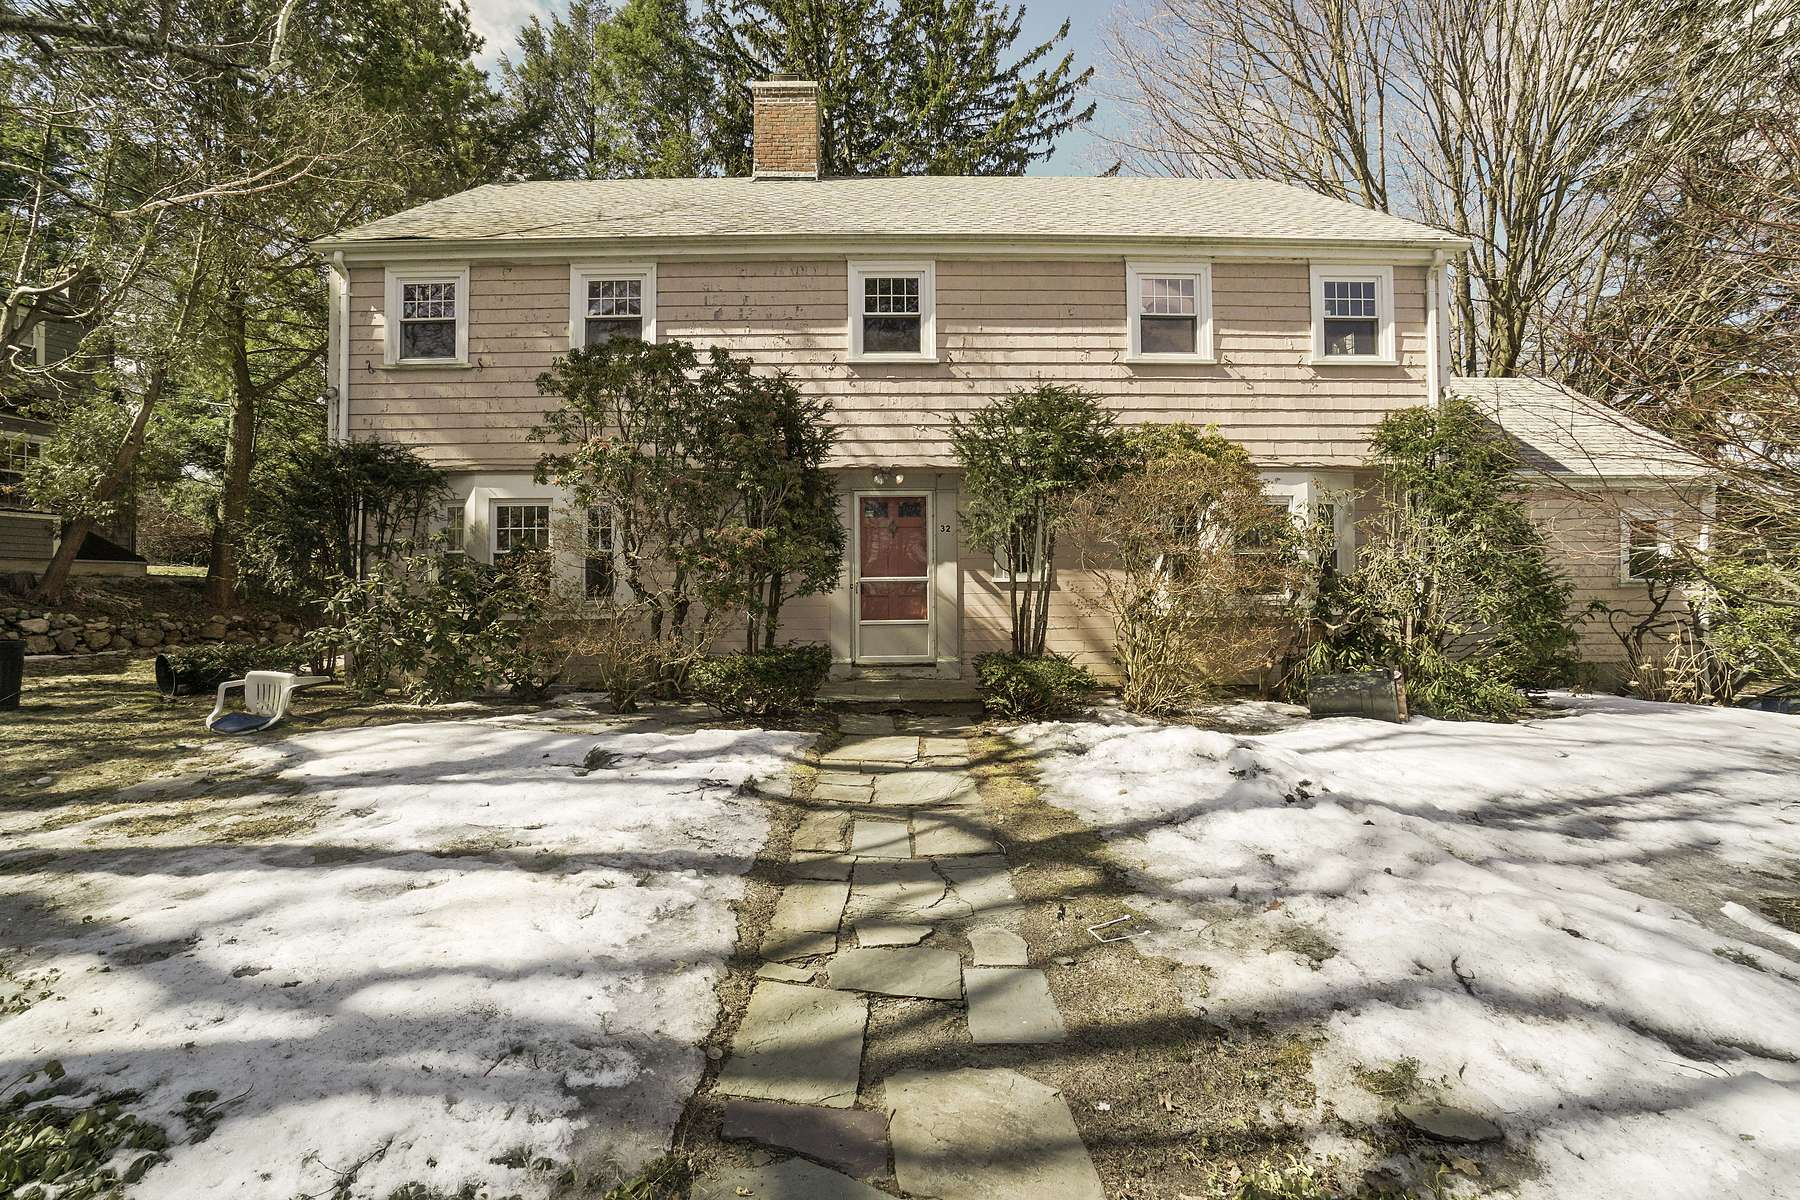 Single Family Home for Active at 32 Ross Road Belmont, Massachusetts 02478 United States